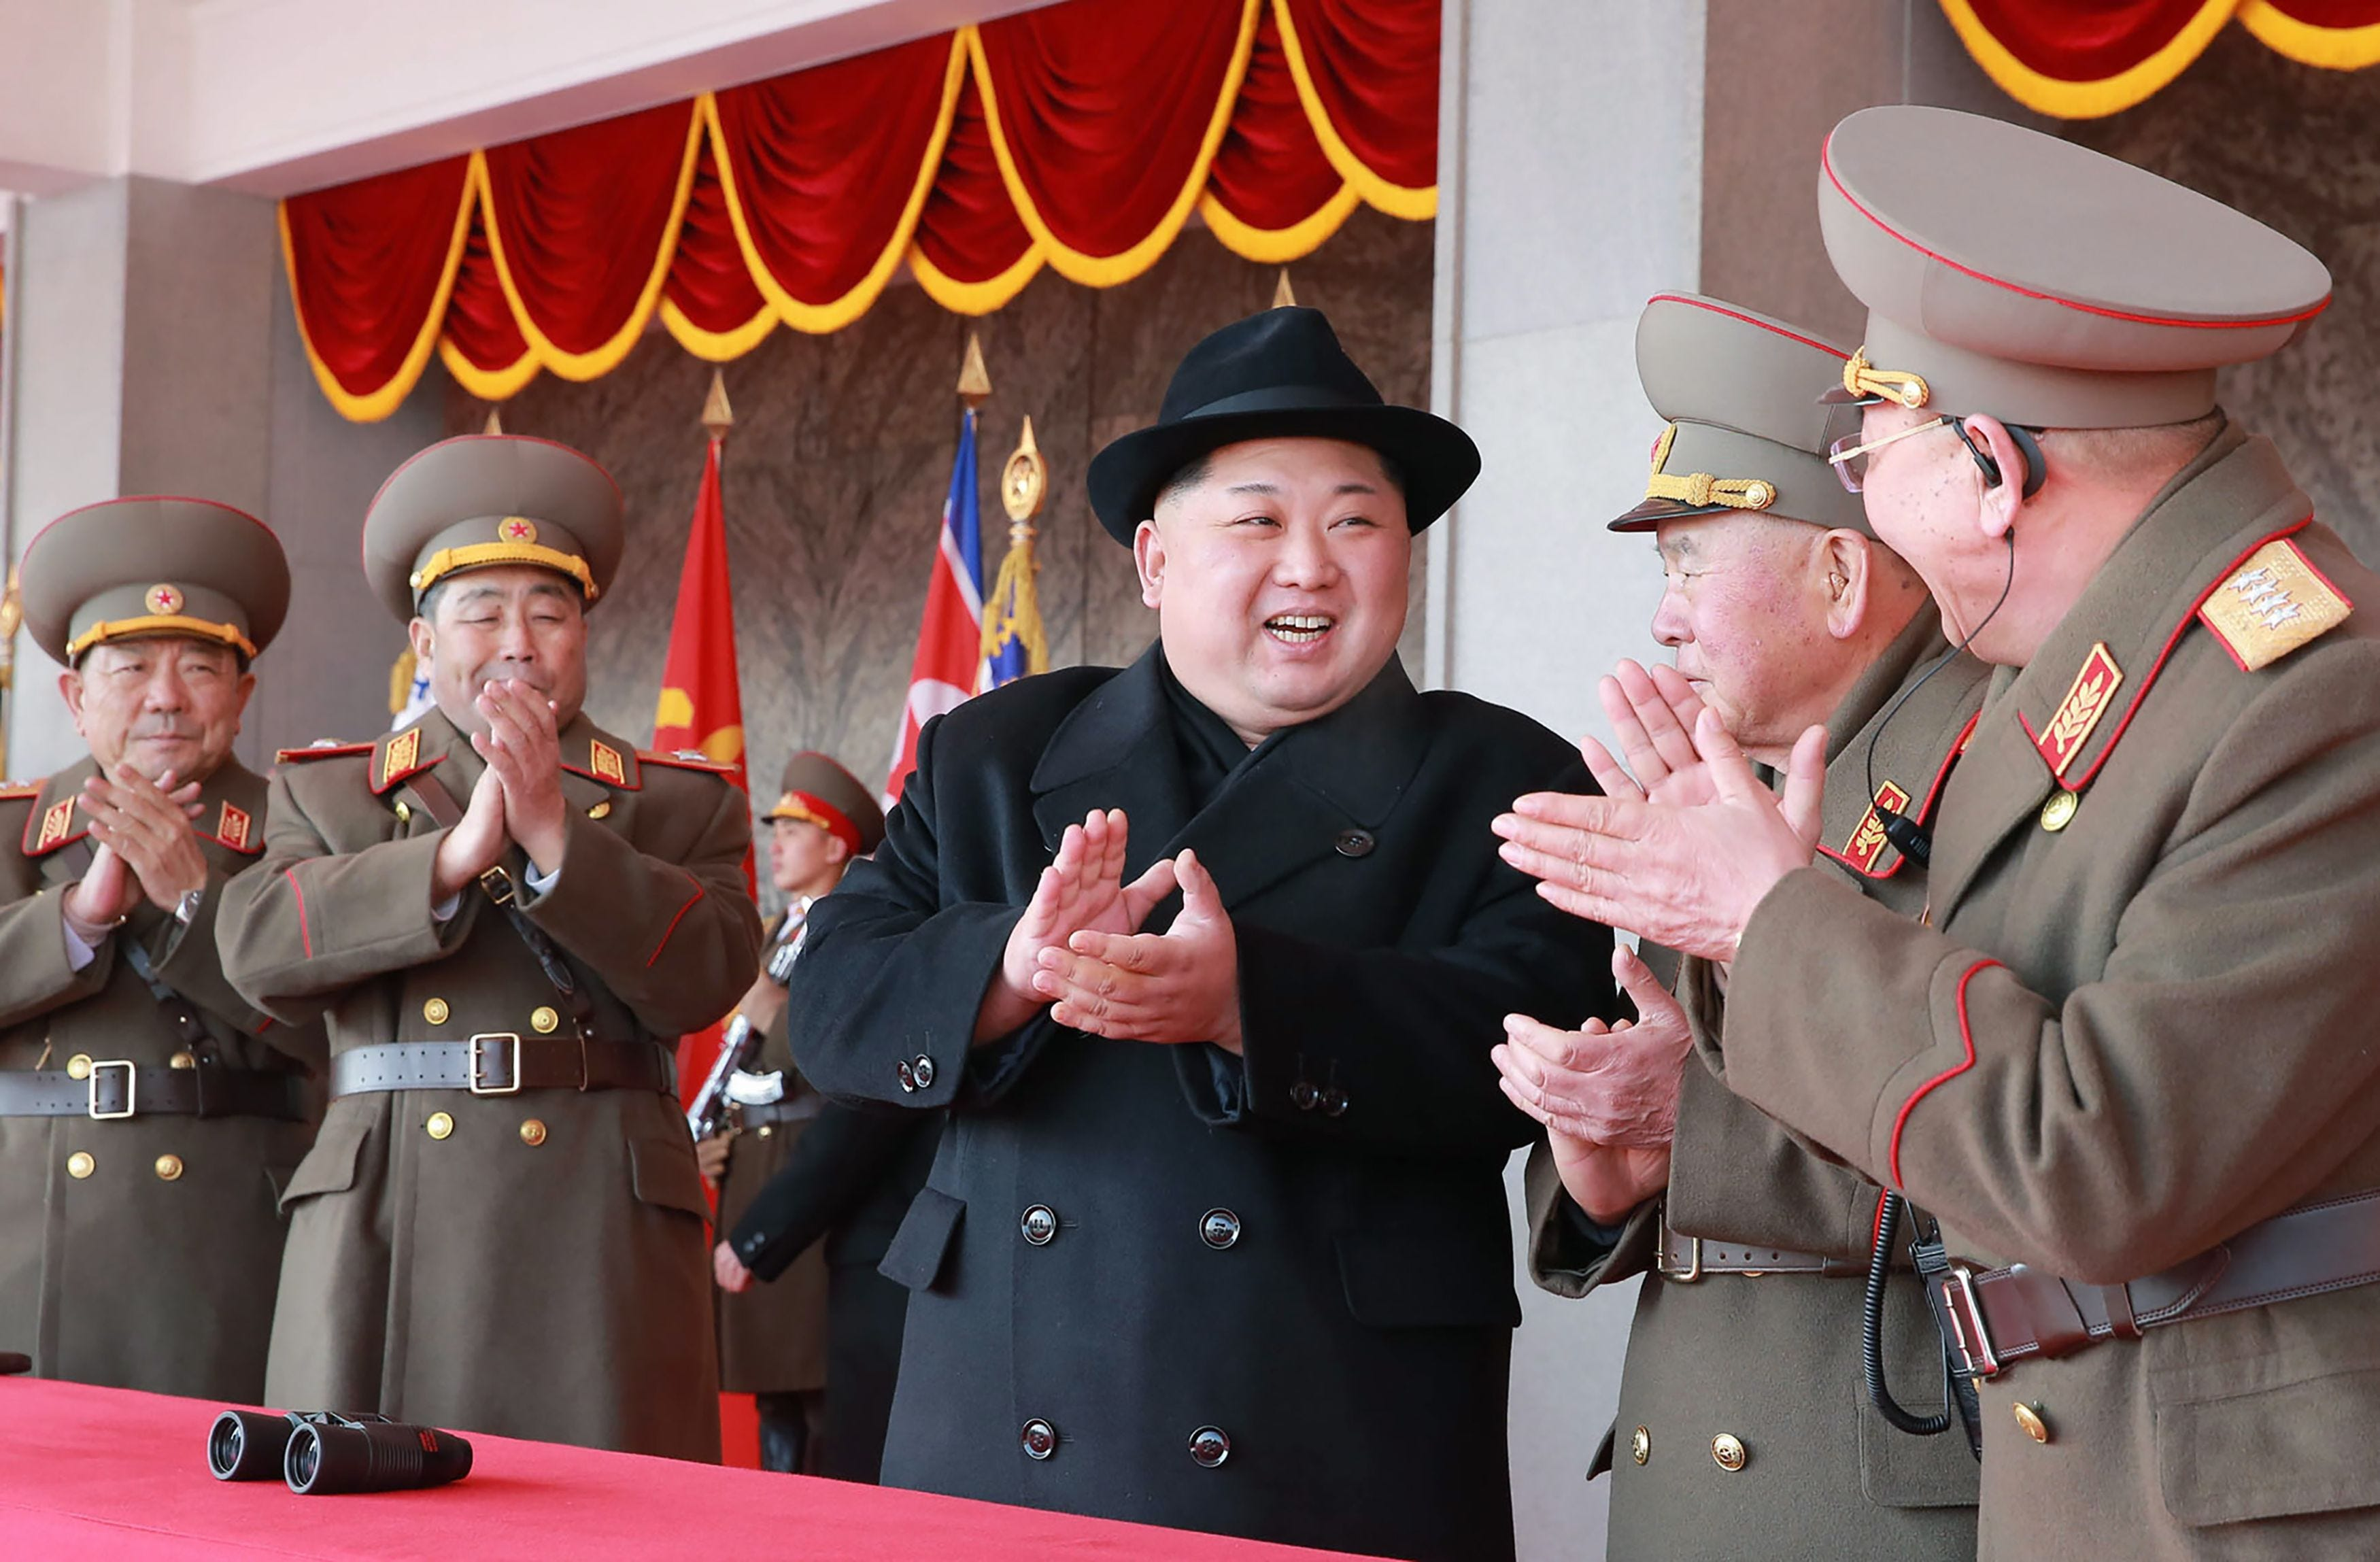 North Korea would consider abandoning its nuclear weapons program: report